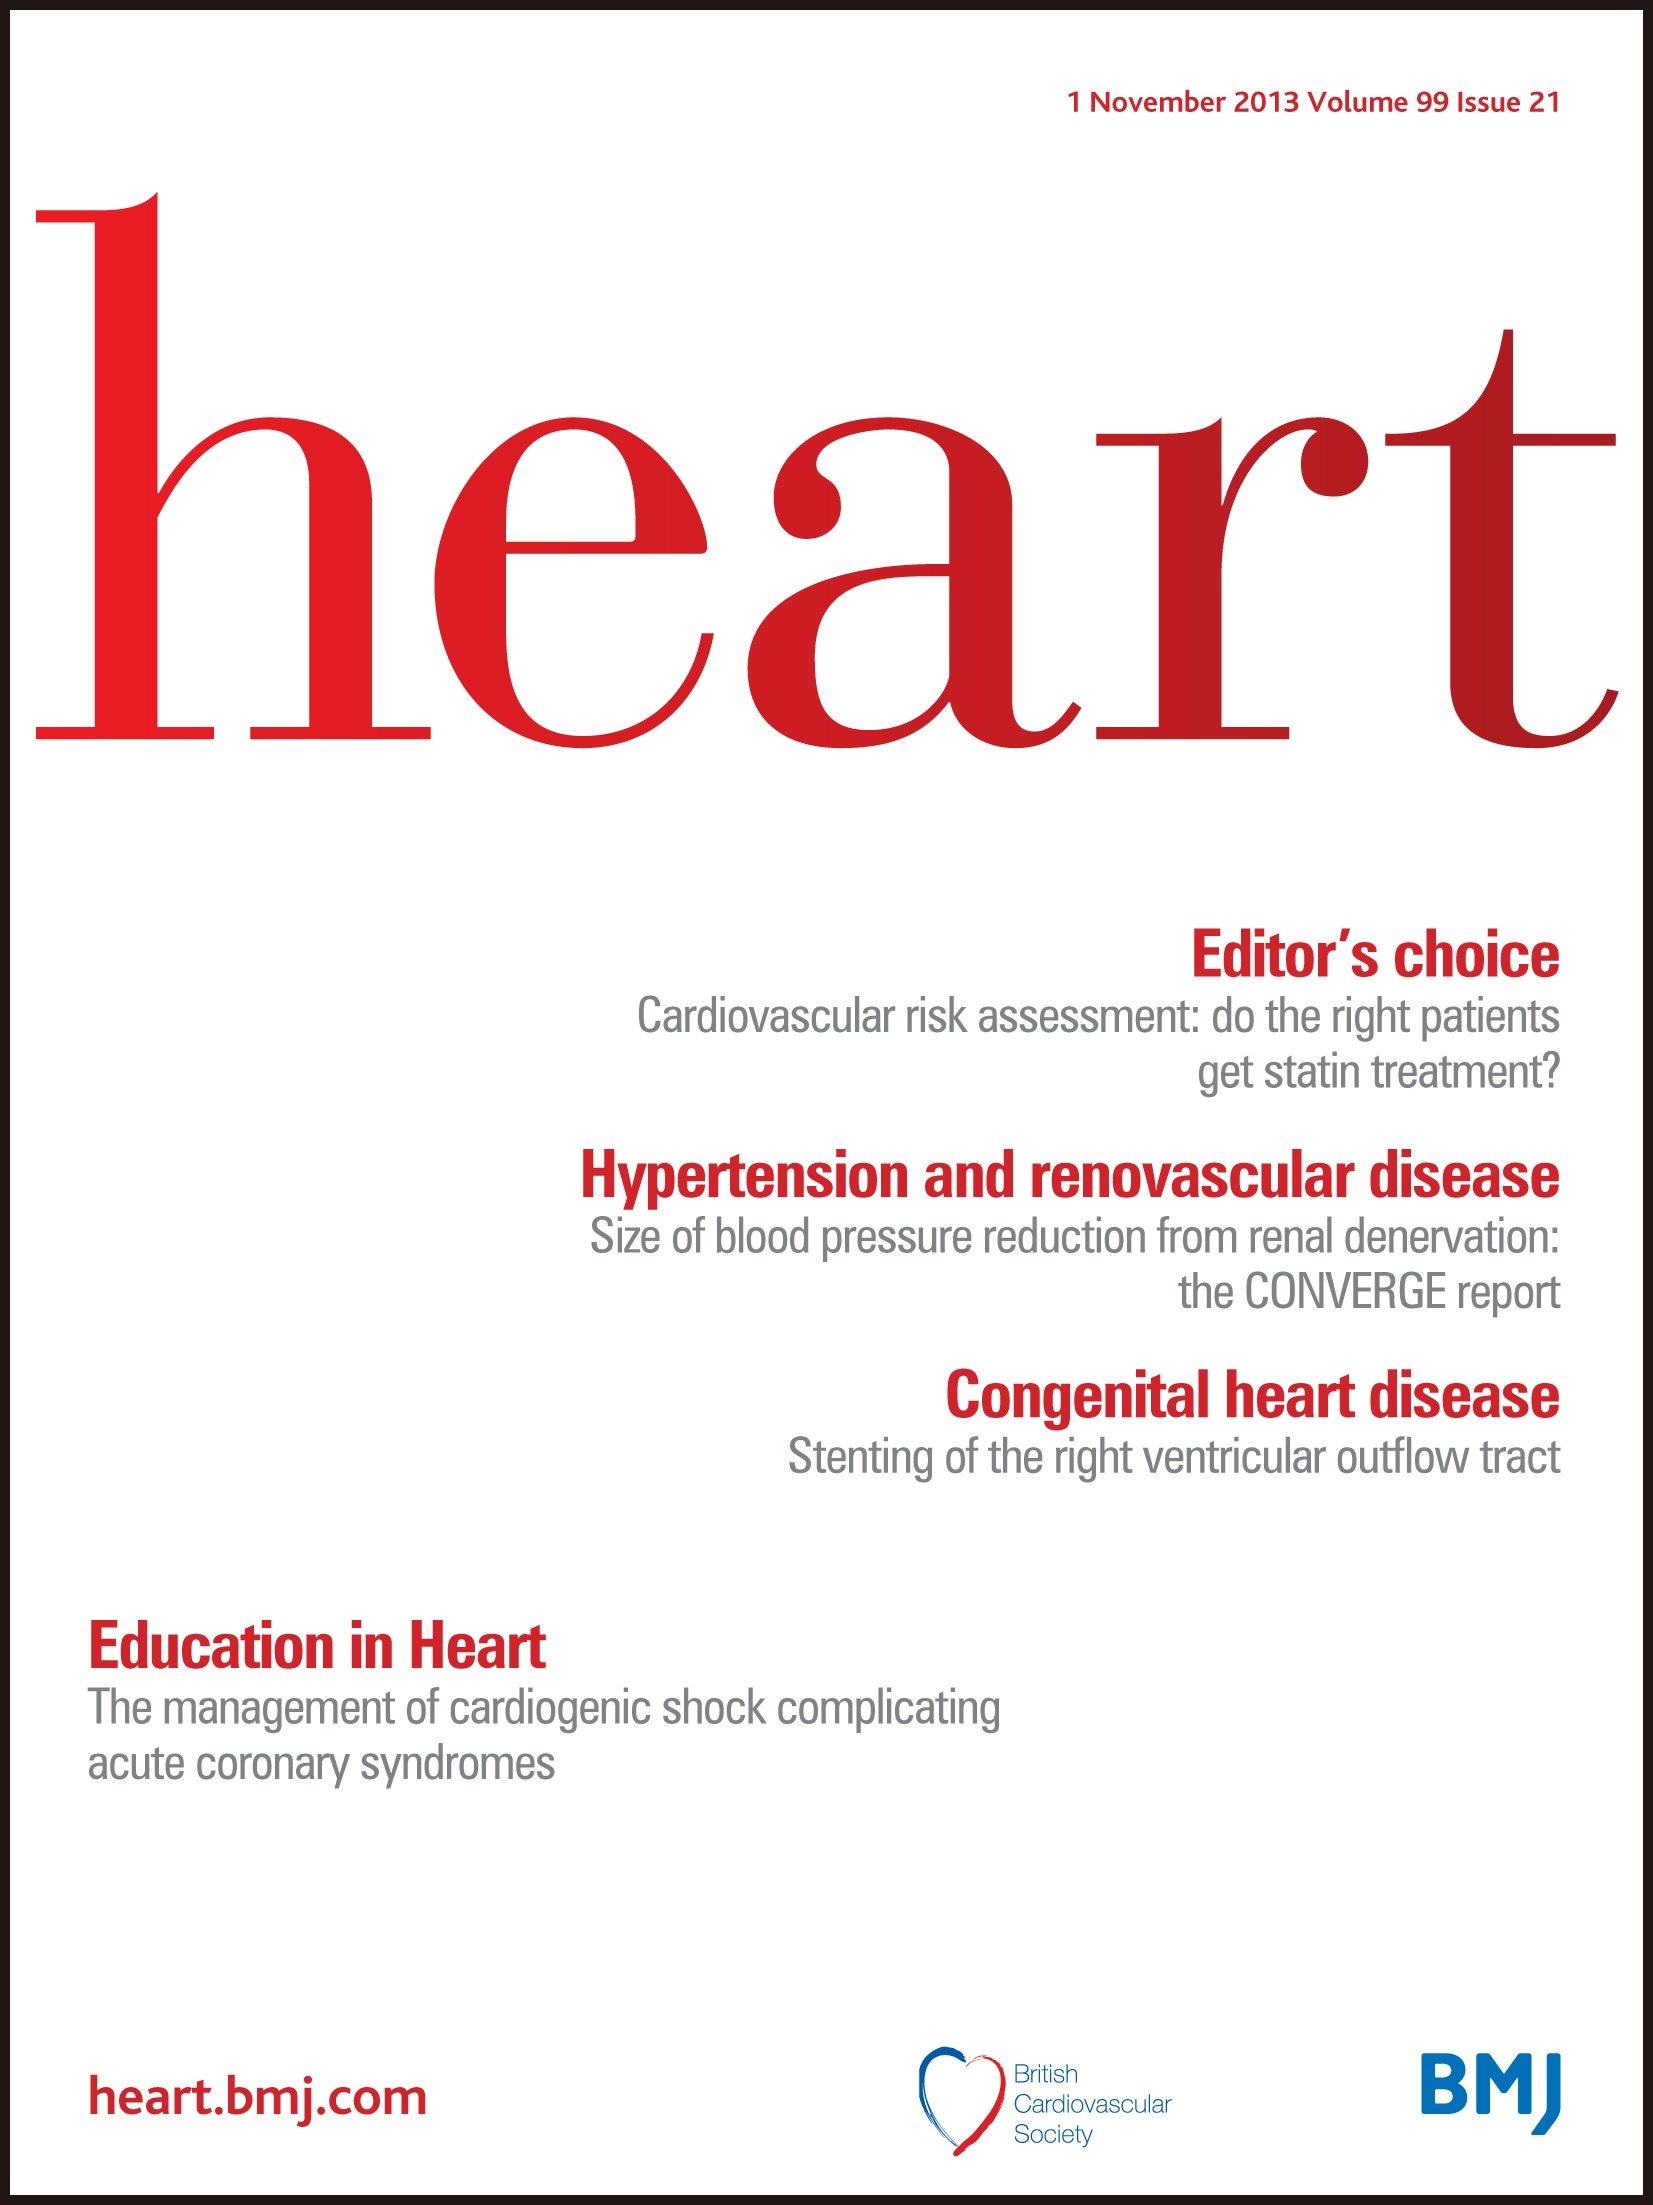 The efficiency of cardiovascular risk assessment: do the